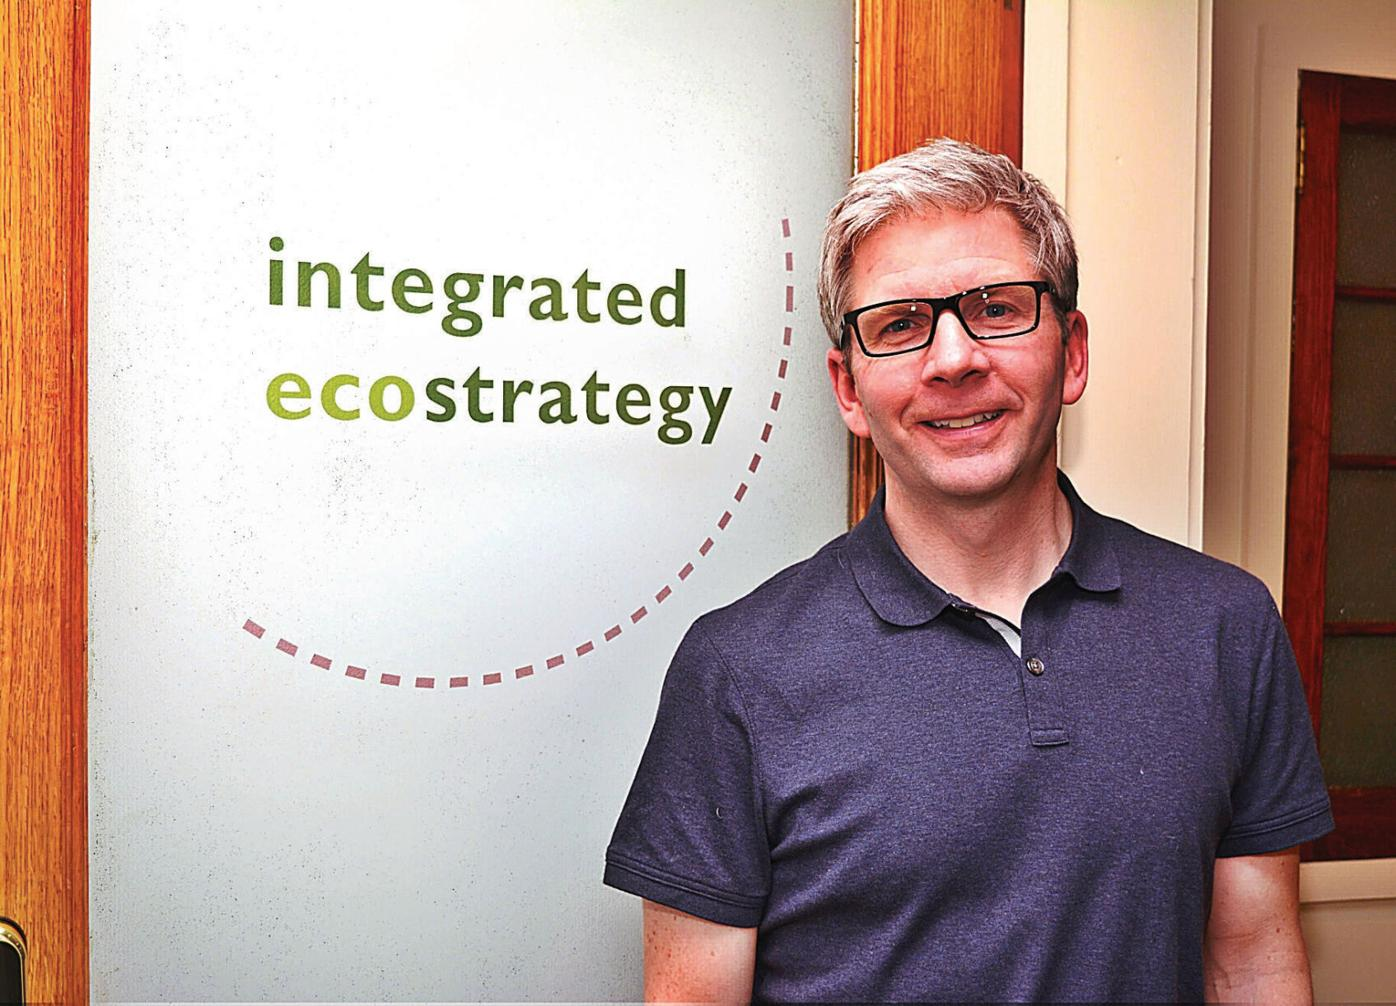 Making buildings even greener: Integrated Eco Strategy develops online tool to aid in green building construction